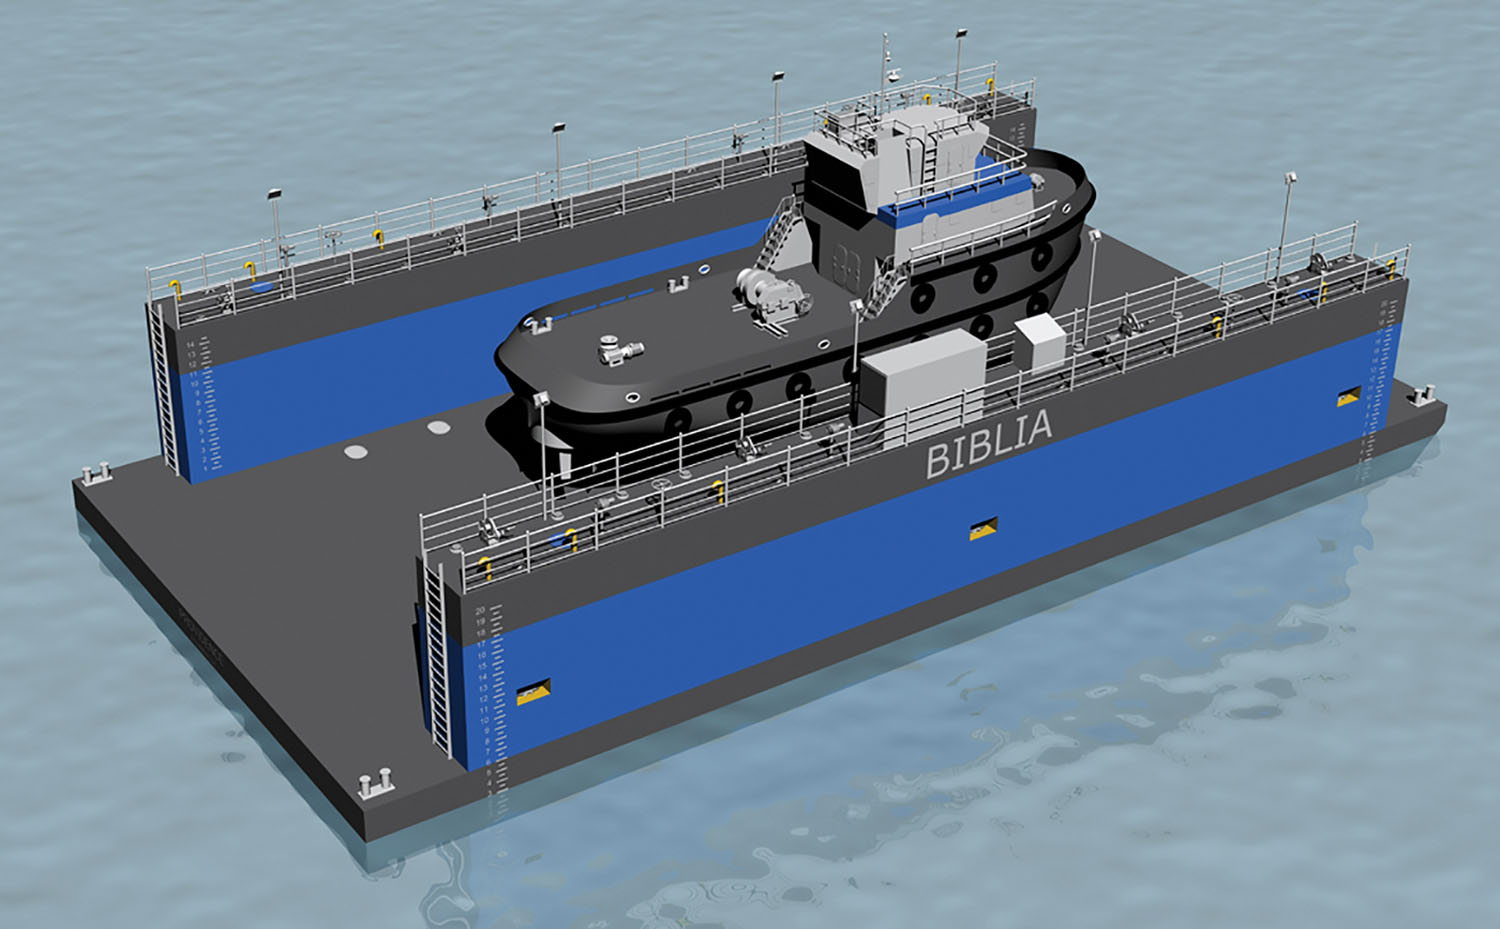 JMS Naval Architects designed the 500-ton drydock, which is scheduled to be delivered this spring.